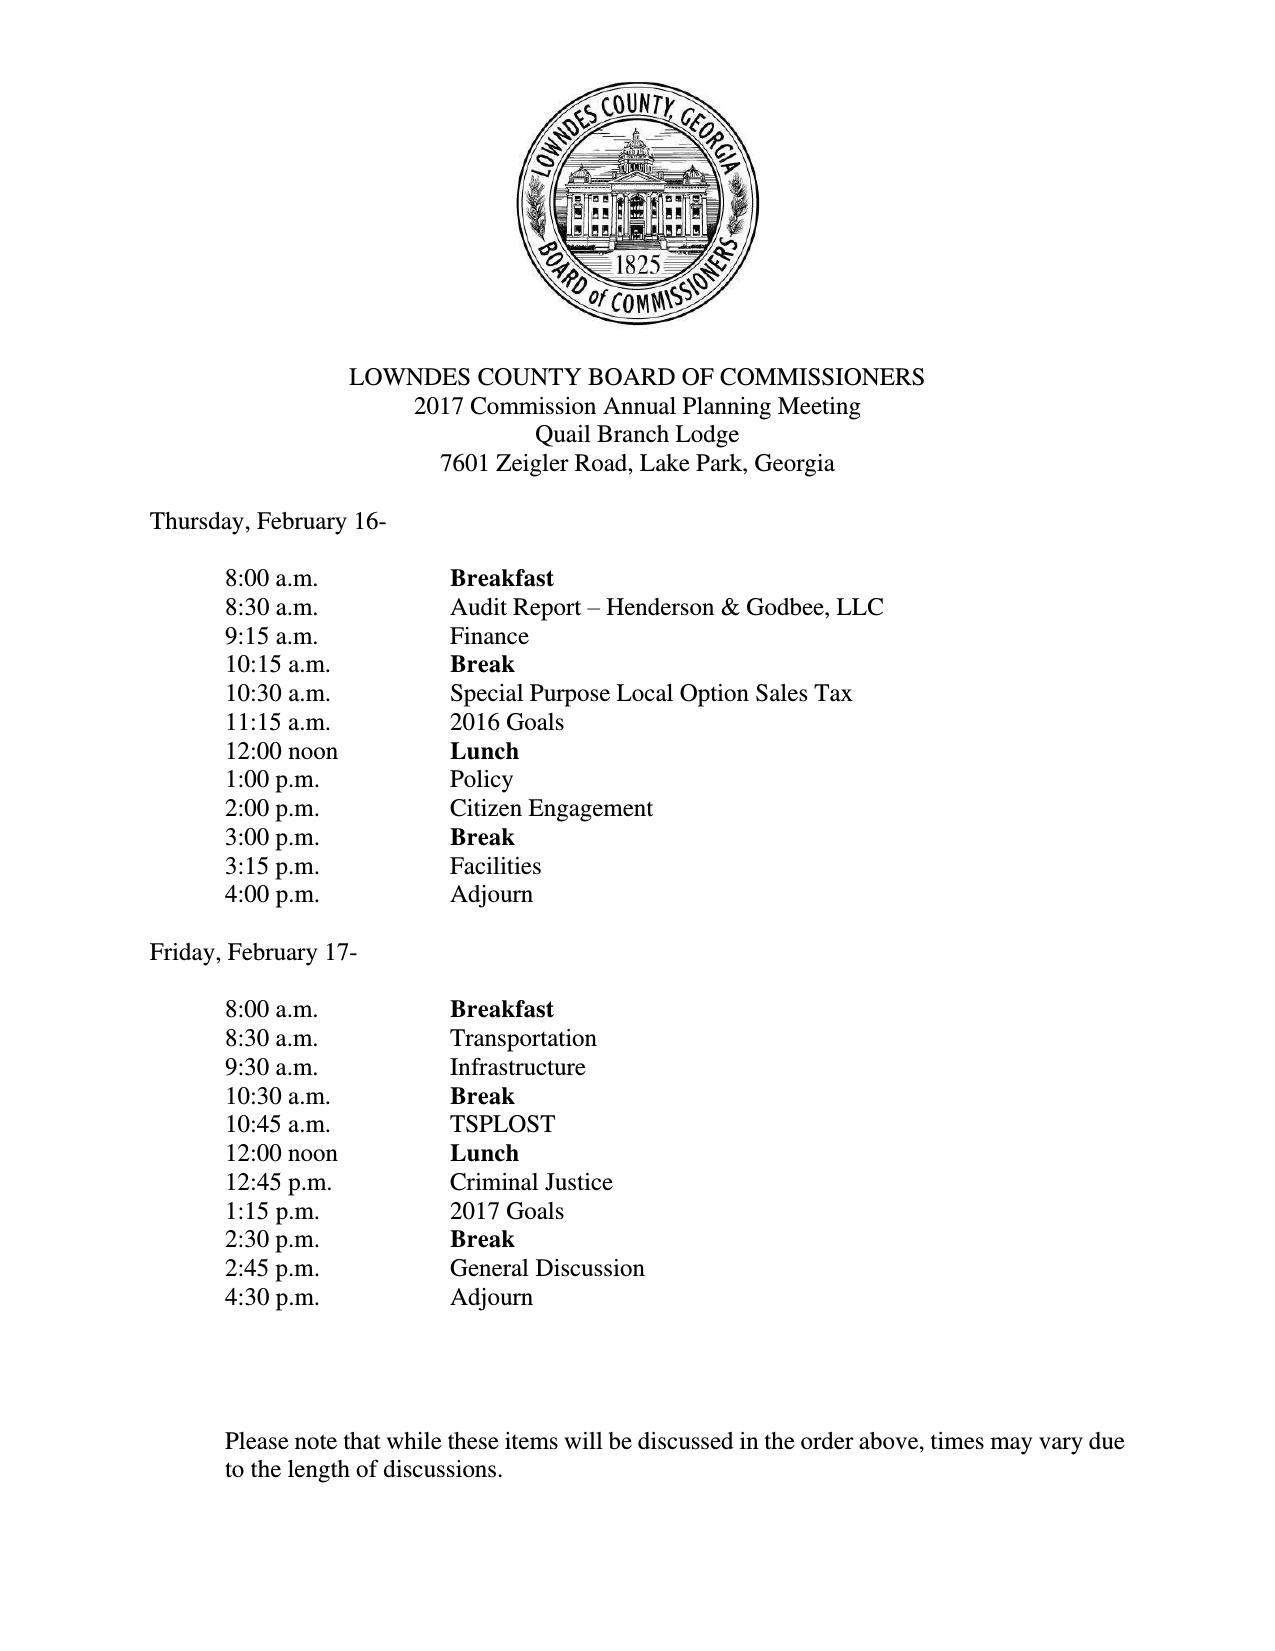 1275x1651 2017-02-16--lcc-planning-agenda-0001, in Agenda, 2017 Commission Annual Planning Meeting, by Lowndes County Board of Commissioners, 16 February 2017